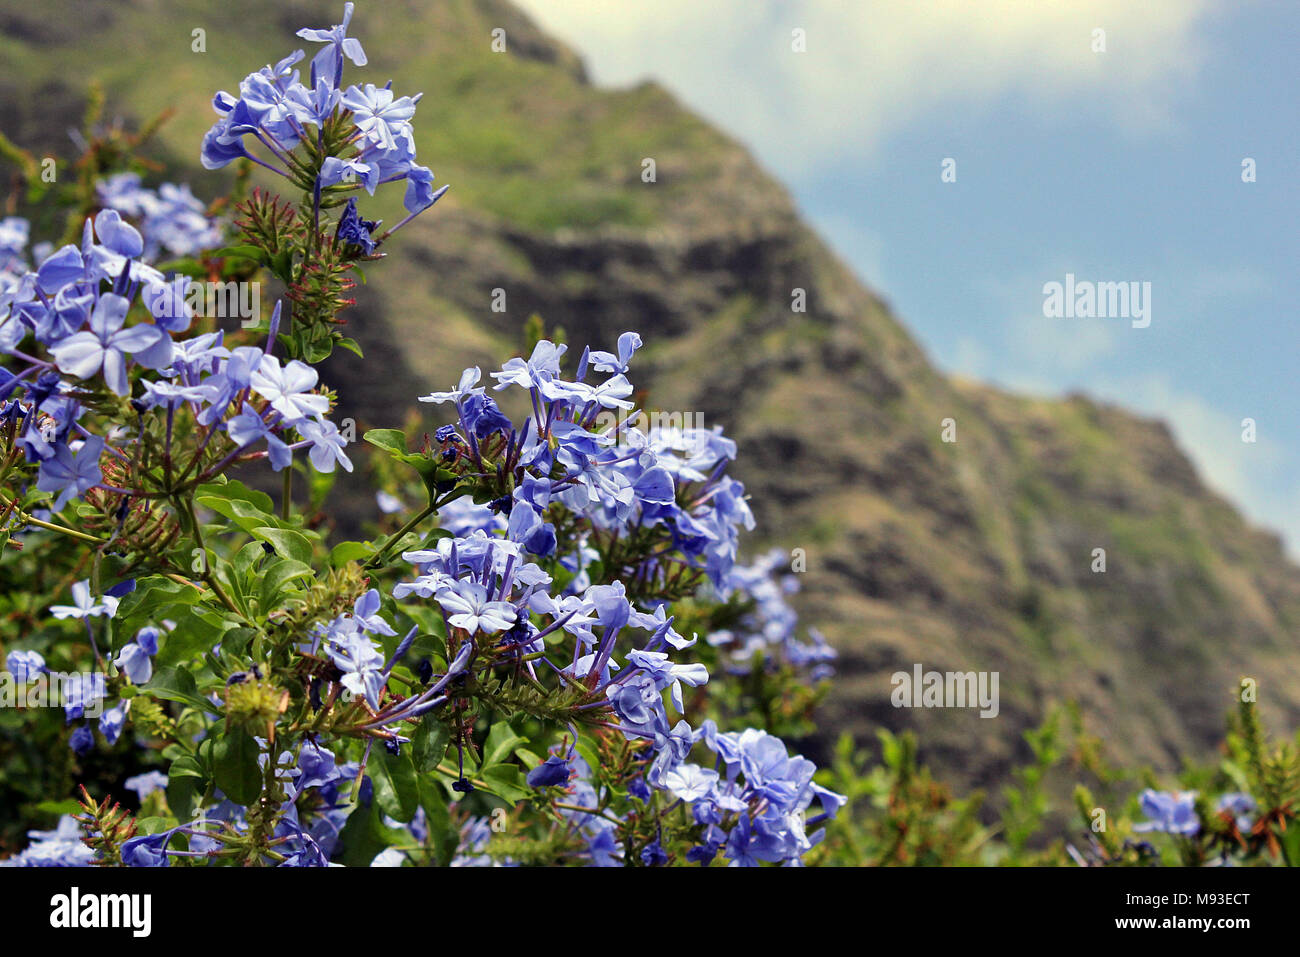 Blue flowers in the kaaawa valley on the hawaiian island of oahu blue flowers in the kaaawa valley on the hawaiian island of oahu izmirmasajfo